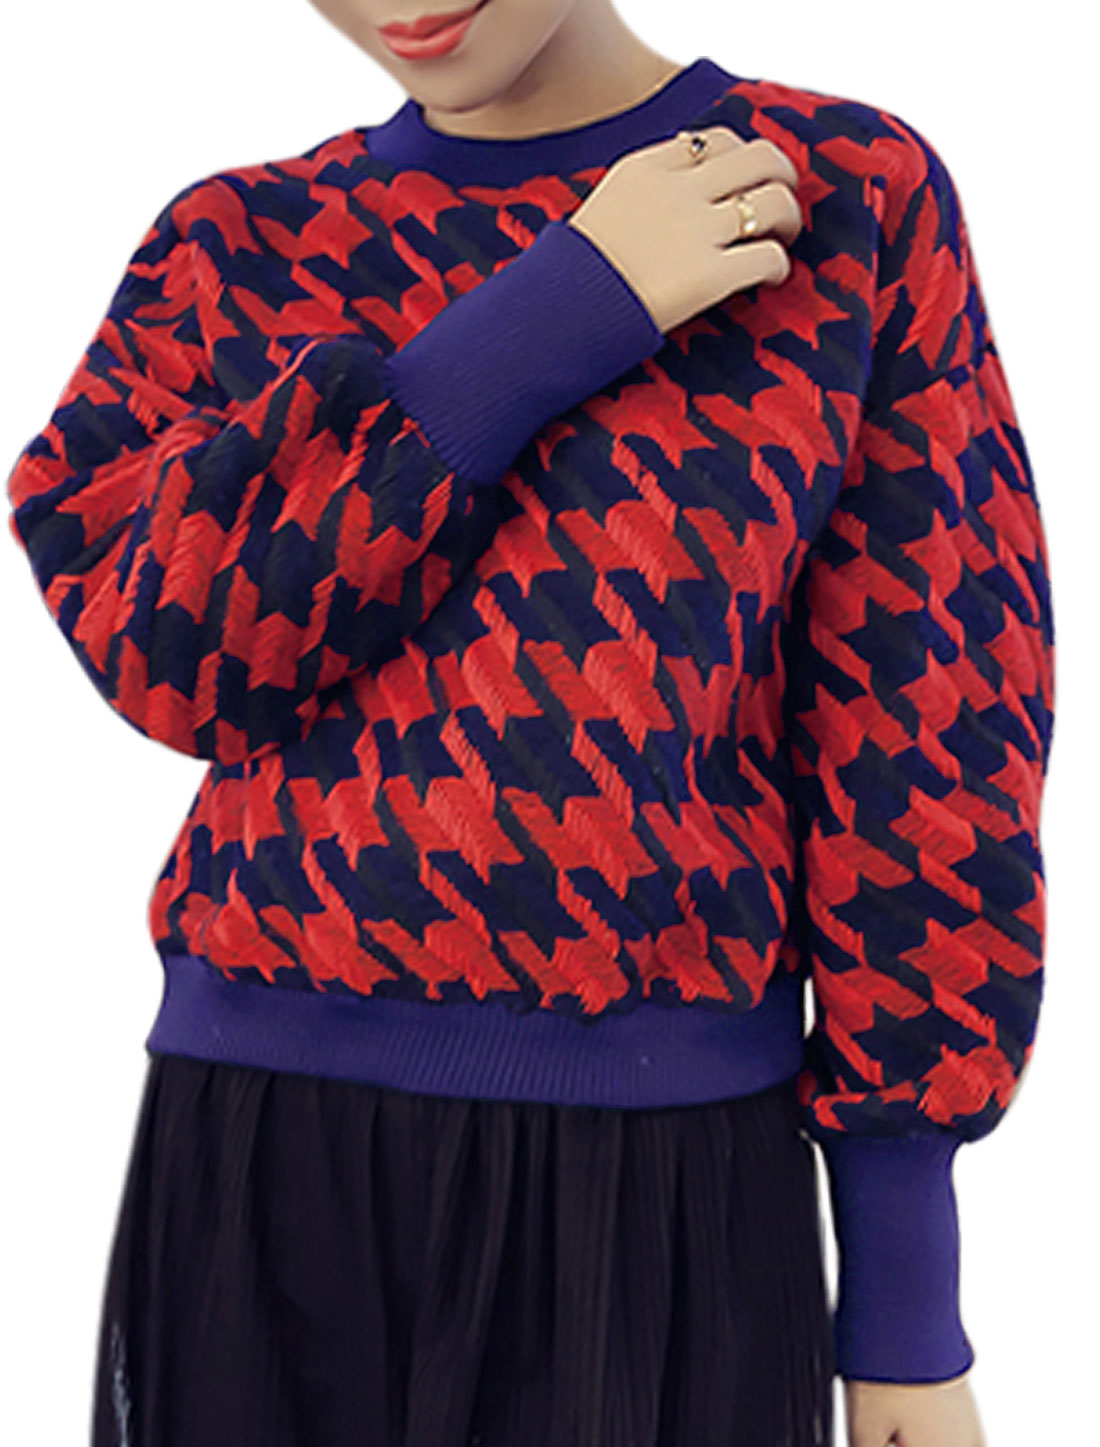 Lady Crew Neck Long Sleeves Houndstooth Pattern Casual Sweater Red XS